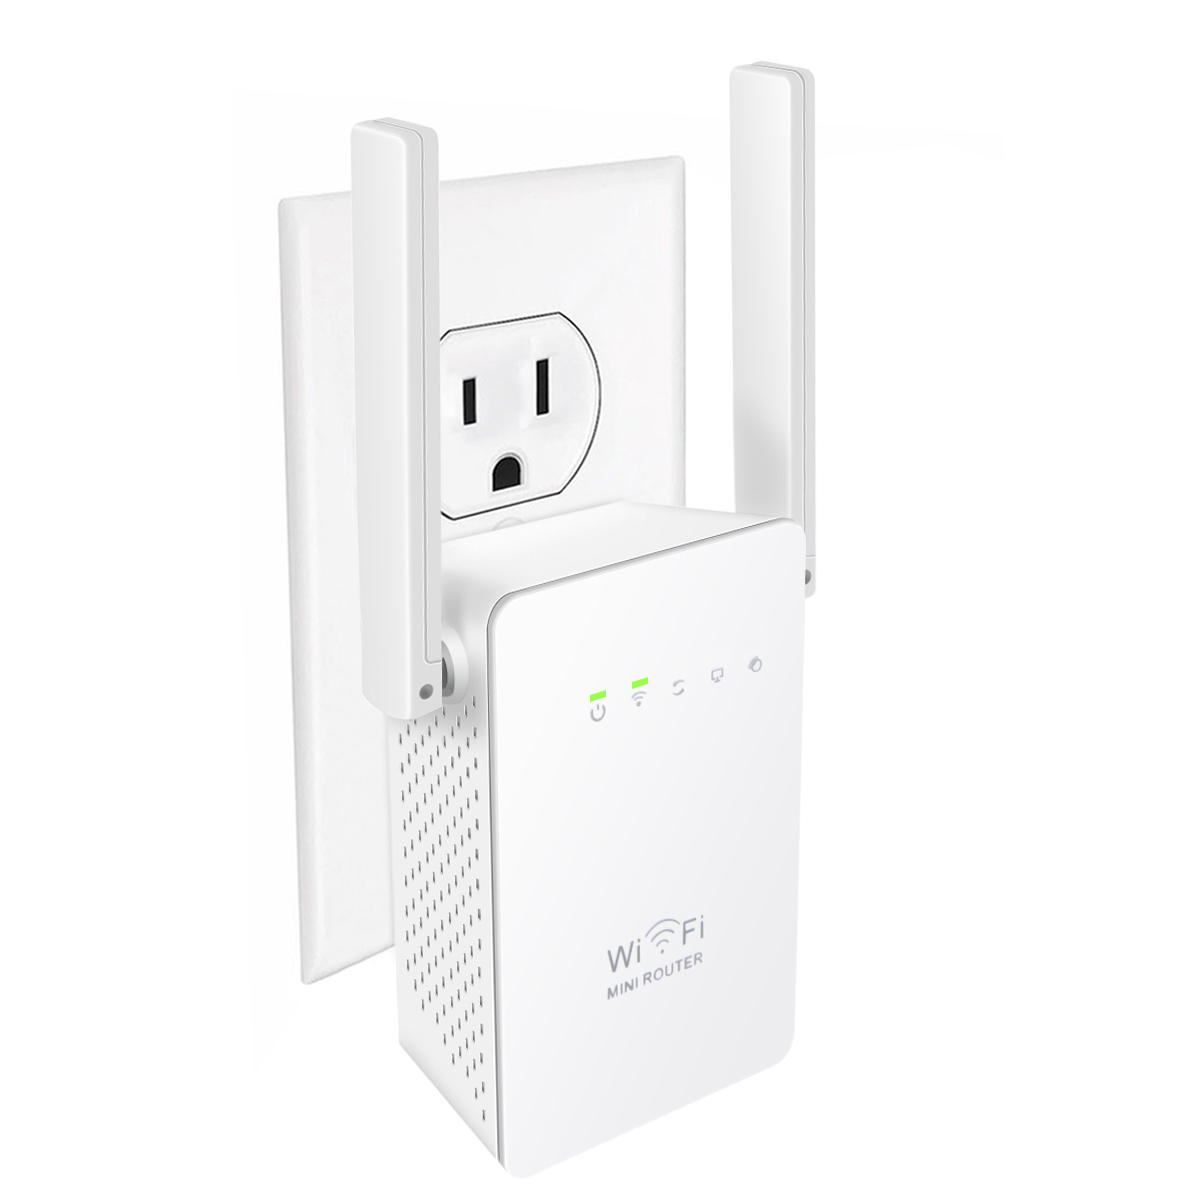 Meco 300Mbps Wireless WiFi Repeater Network Router Extender-White